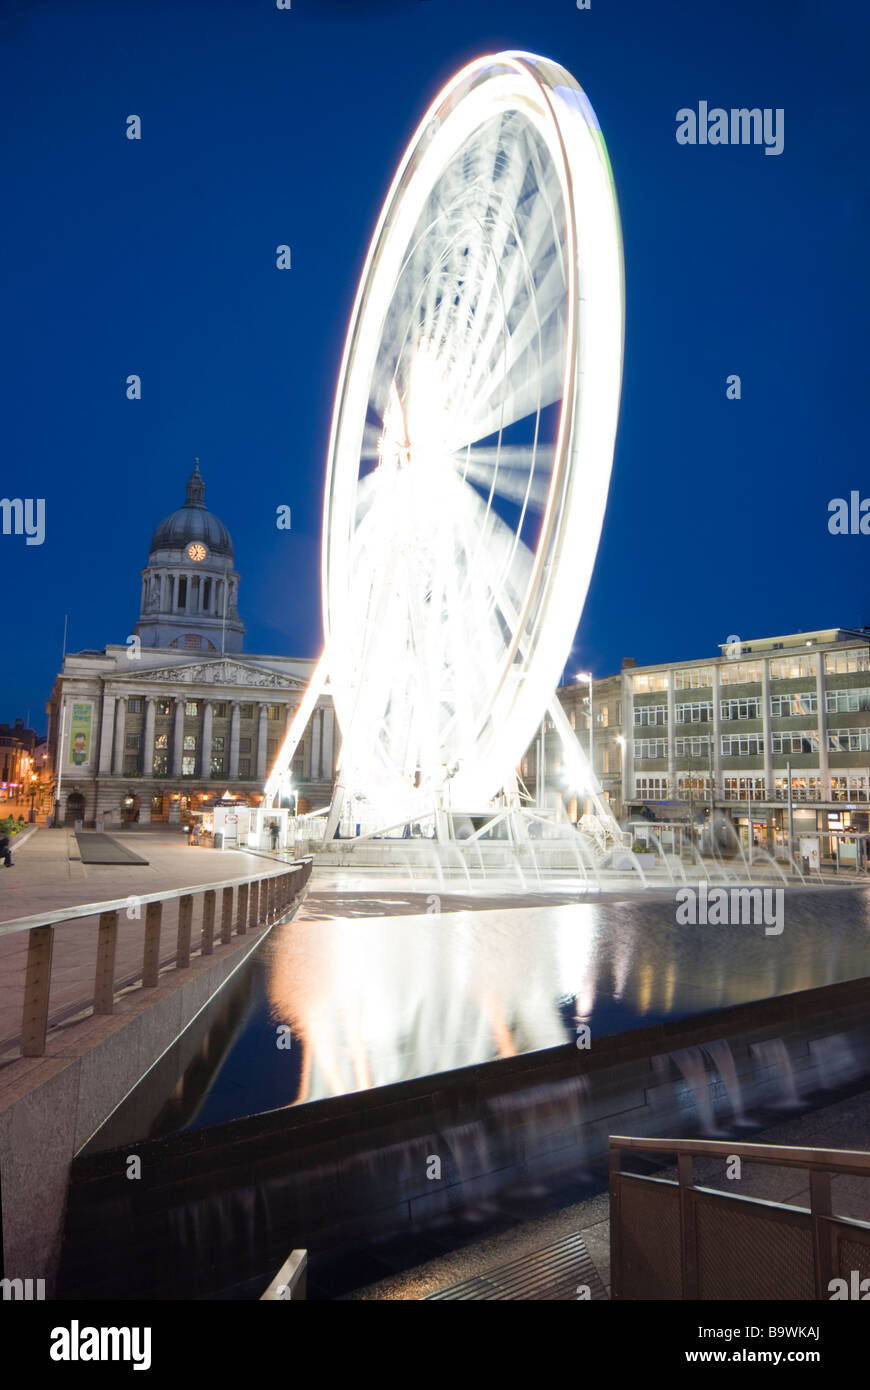 Nottingham city centre, with the Nottingham eye against the night sky. - Stock Image